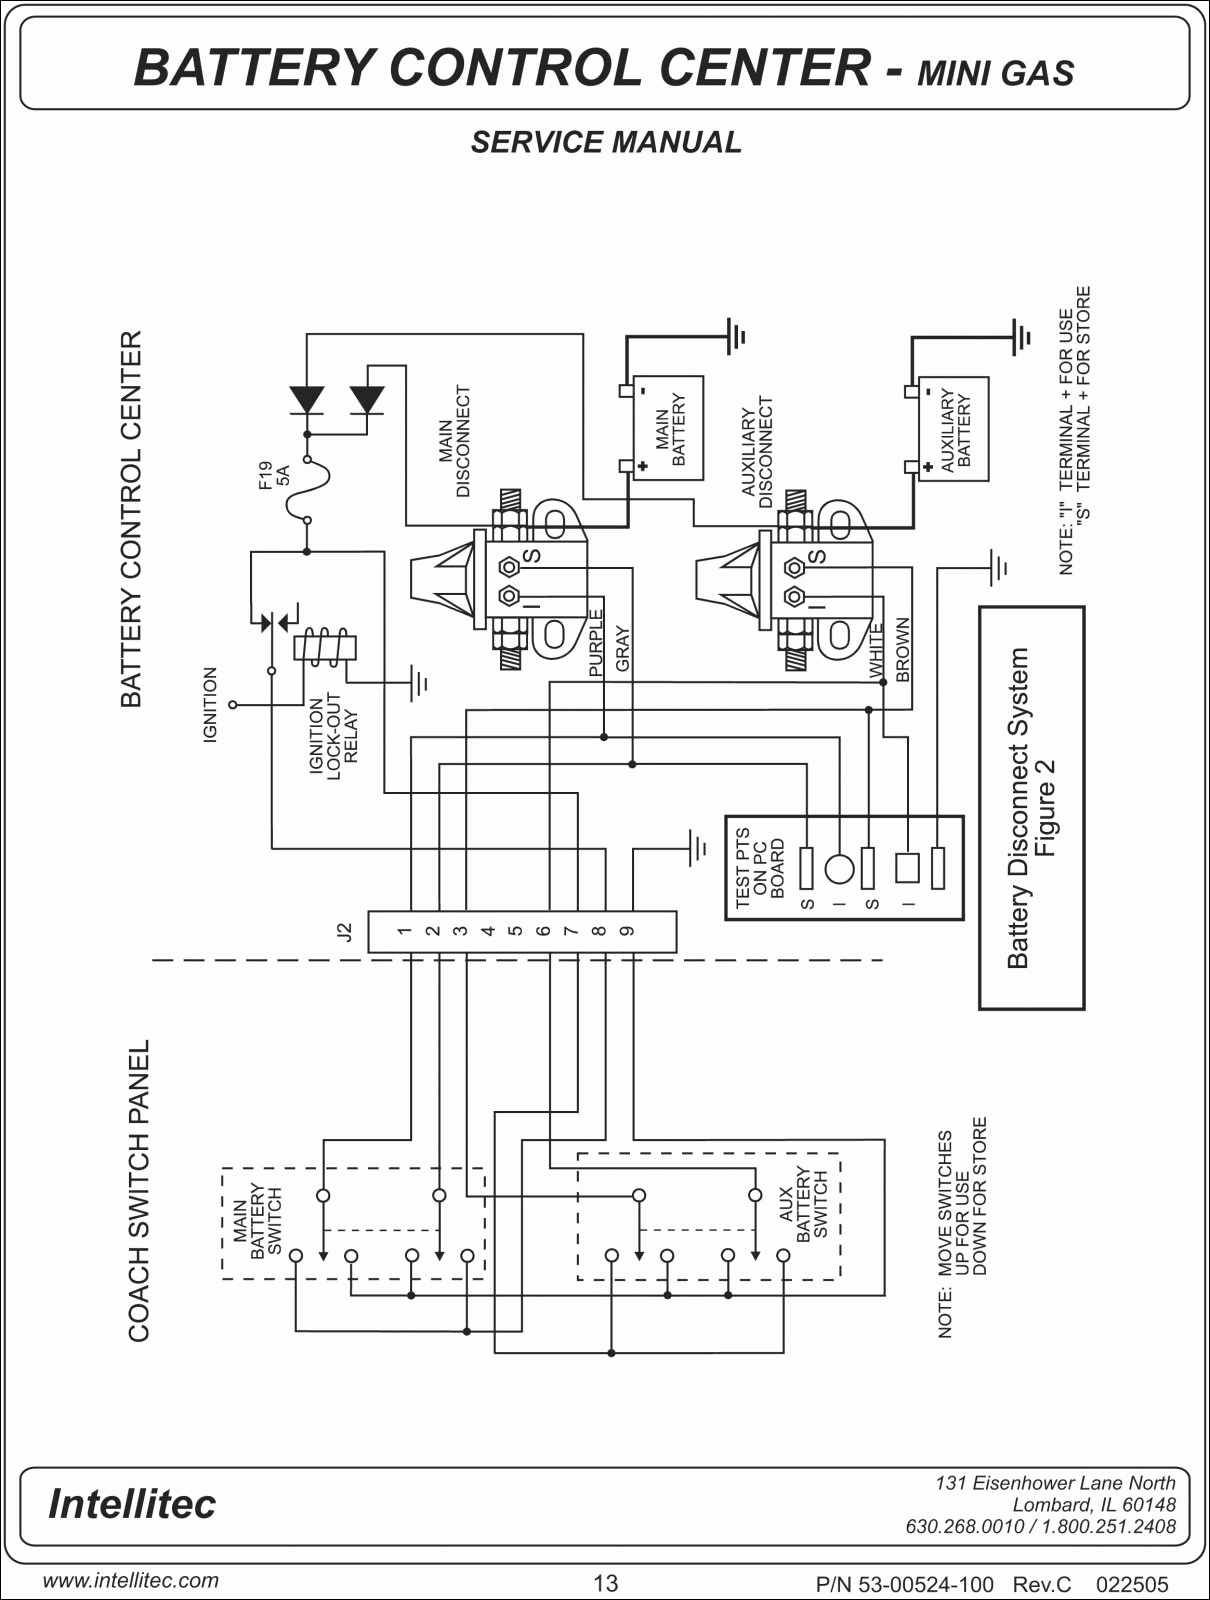 Ac disconnect wiring diagram free download schematic